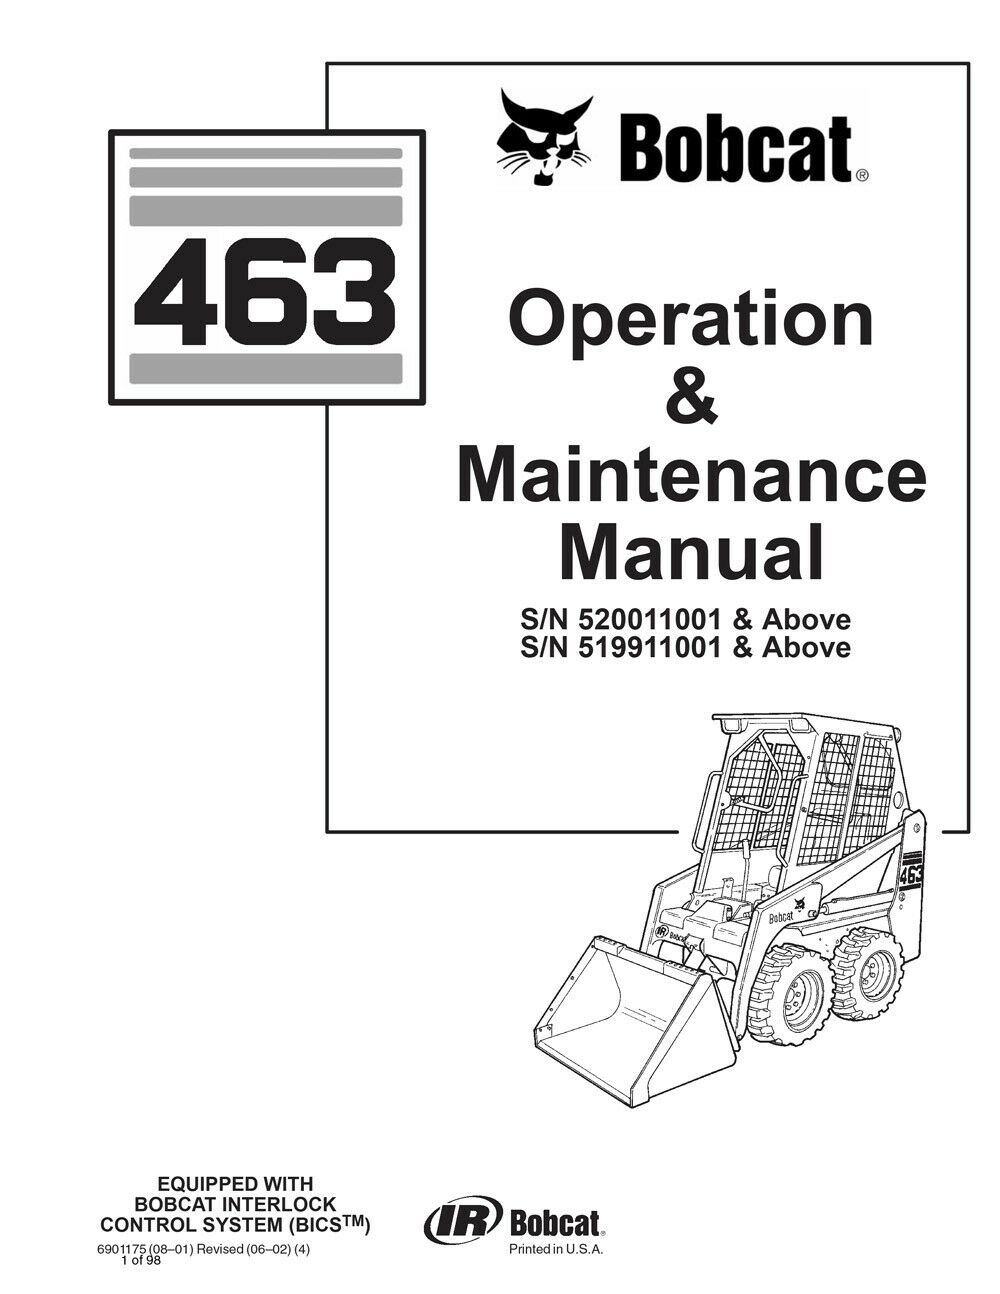 New Bobcat 463 Skid Steer Loader 2006 Edition Repair